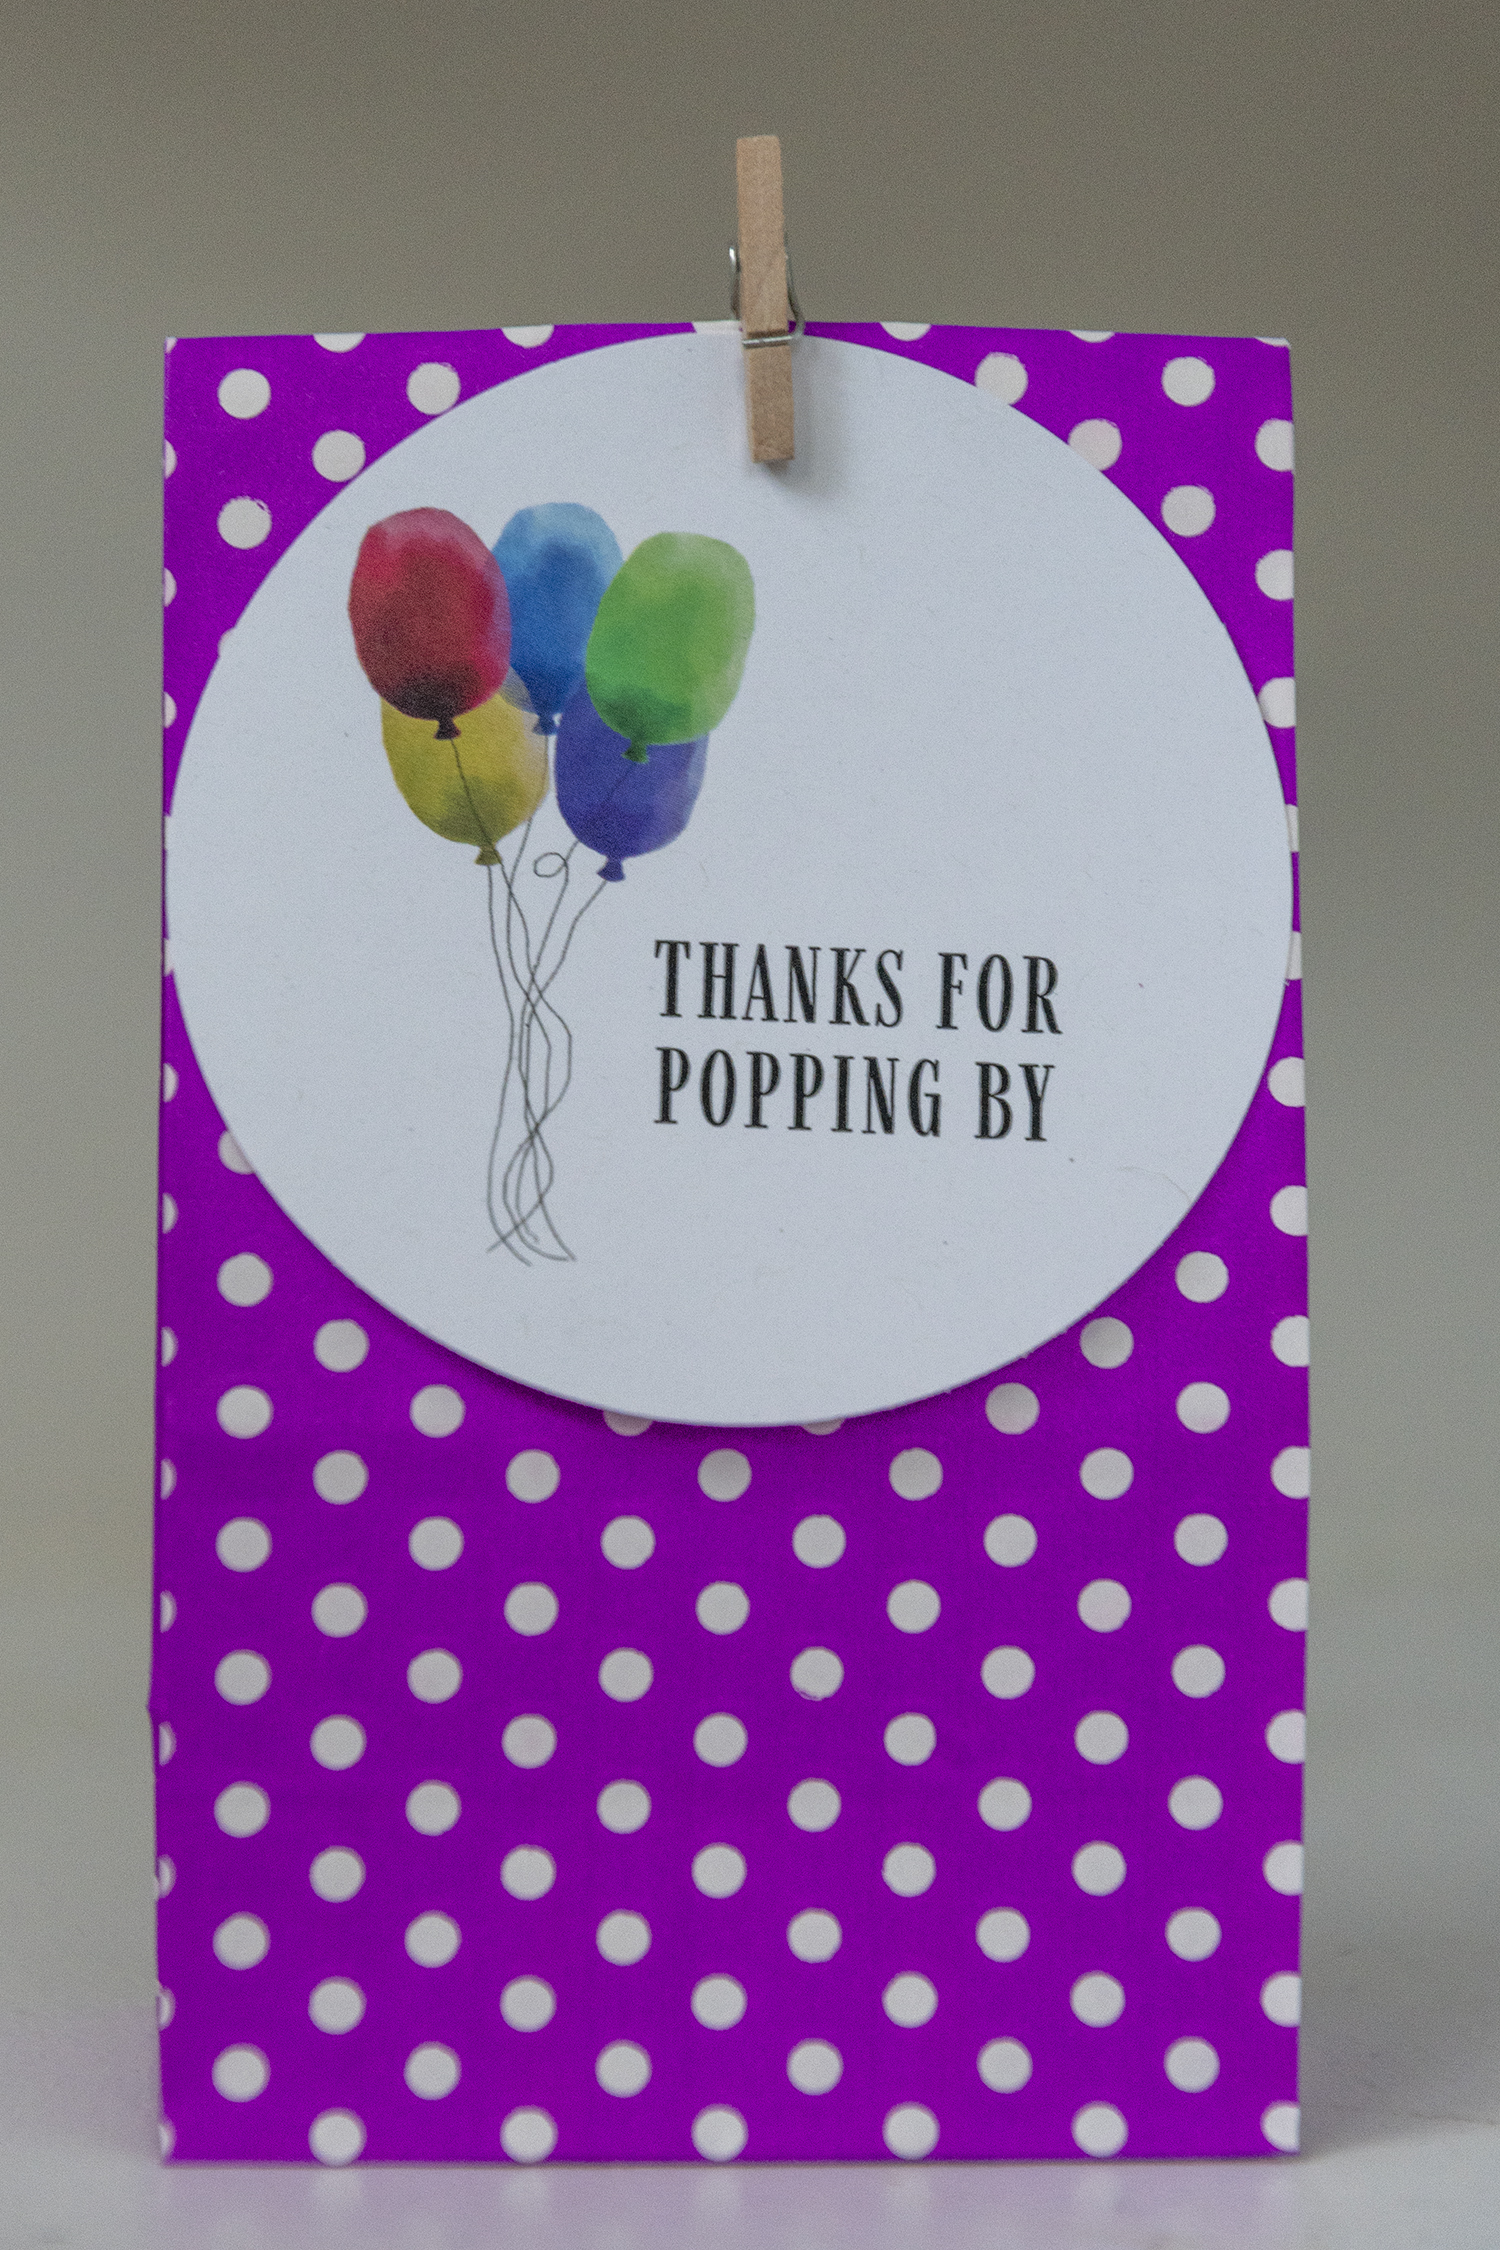 photograph regarding Thanks for Popping by Printable called Due for Popping Via Present Tags FAKING IT Magnificent